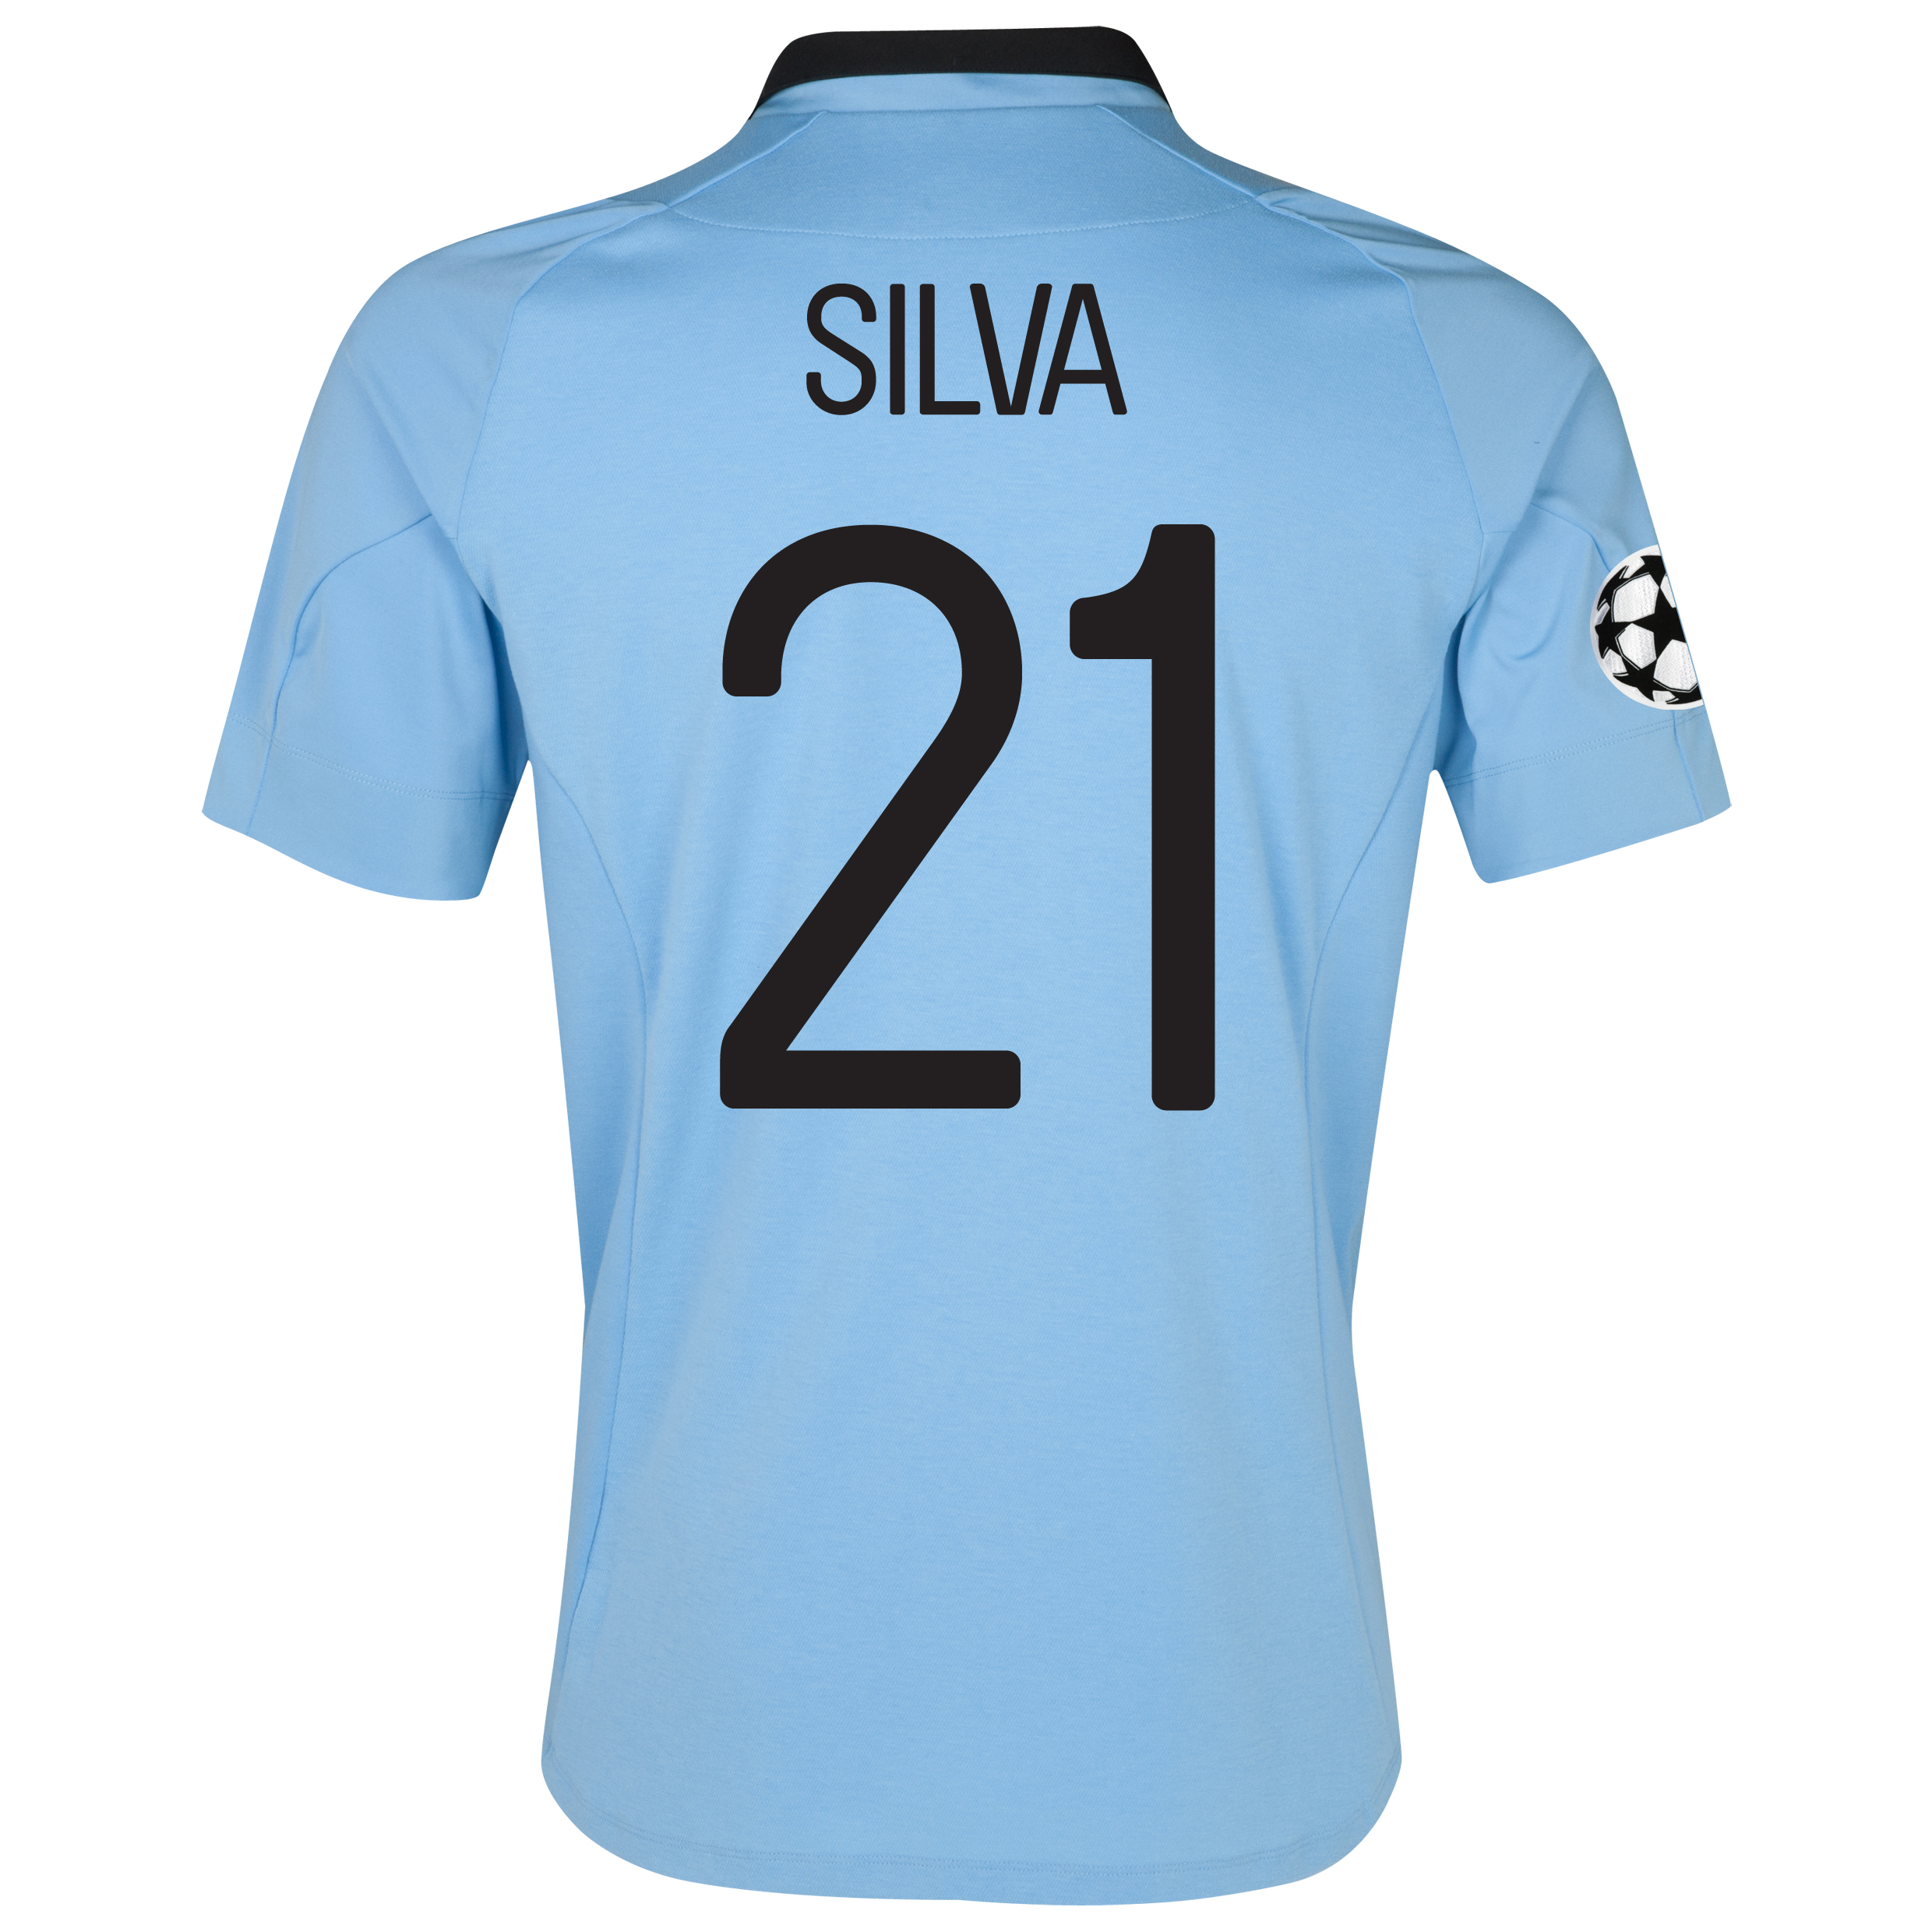 Manchester City UEFA Champions League Home Shirt 2012/13 with Silva 21 printing